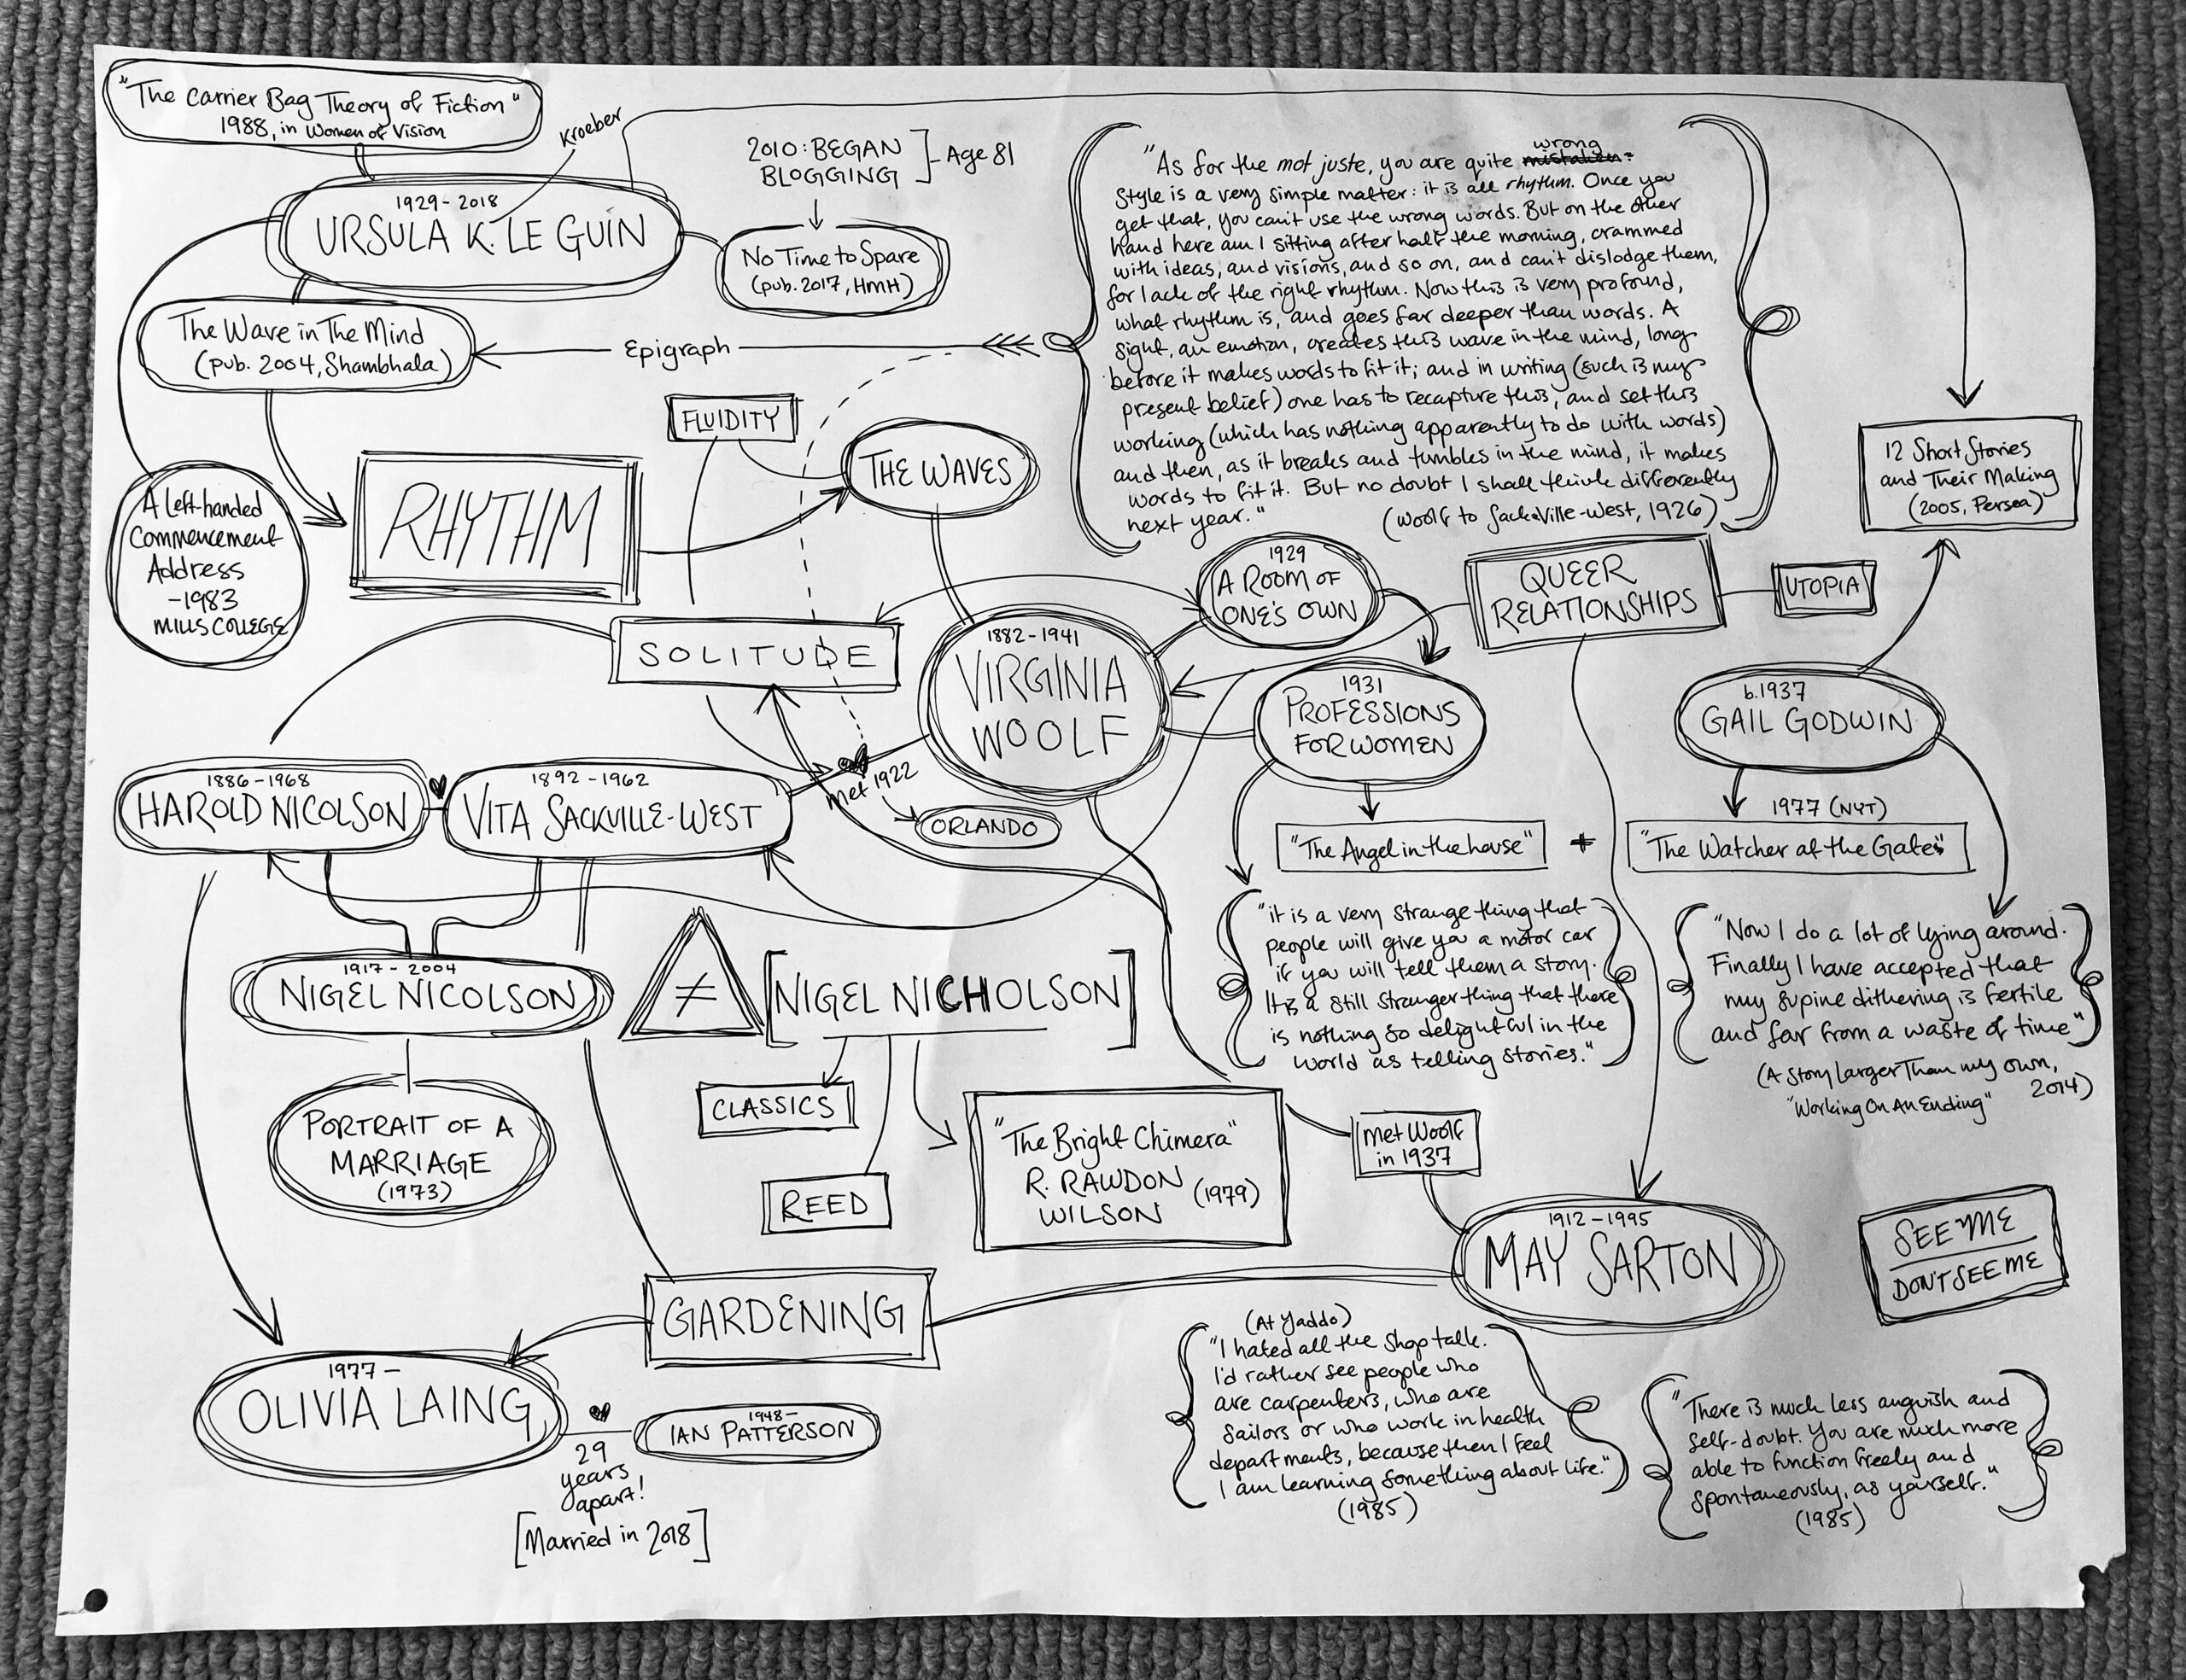 """A complex mind map connecting various names and creative works of nine people, mostly female writers.   The following themes are positioned throughout the page like nodes: [See Me / Don't See Me] [Gardening] [Queer Relationships] [Utopia] [Solitude] [Fluidity] [Rhythm]  Ursula K. (Kroeber) Le Guin 1929 - 2018 """"The Carrier Bag Theory of Fiction"""" 1988 in Women of Vision 2010: Began [Age 81] Blogging No Time to Spare (pub. 2017, HMH) A left-handed Commencement Address, 1983 Mills College The Wave in The Mind (pub. 2004, Shambhala) Epigraph: """"As for the mot juste, you are quite wrong. Style is a very simple matter: it is all rhythm. Once you get that you can't use the wrong words. But on the other hand here am I sitting after half the morning, crammed with ideas, and visions, and so on, and can't dislodge them, for lack of the right rhythm. Now this is very profound, what rhythm is, and goes far deeper than words. A sight, an emotion, creates this wave in the mind, long before it makes words to fit it, and in writing (such is my present belief) one has to recapture this, and set this working (which has nothing apparently to do with words) and then as it breaks and tumbles in the mind, it makes words to fit it. But no doubt I shall think differently next year."""" (Woolf to Sackville-West, 1926).   Virginia Woolf (1882-1941) 1931 Professions For Women """"It is a very strange thing that people will give you a motor car if you will tell them a story. It is a still stranger thing that there is nothing so delightful in the world as telling stories."""" """"The Angel in the house"""" Orlando The Waves 1929 Room of One's Own Met Sackville-West in 1922  Gail Godwin (b. 1937) 1977 (NYT) The Watcher at the Gates 12 Short Stories and Their Making (2005, Persea) Appeared with Le Guin in same publication """"A story larger than my own"""" Working On An Ending, 2014 """"Now I do a lot of lying around. I finally I have accepted that my supine dithering is fertile and far from a waste of time""""  Harold Nicols"""